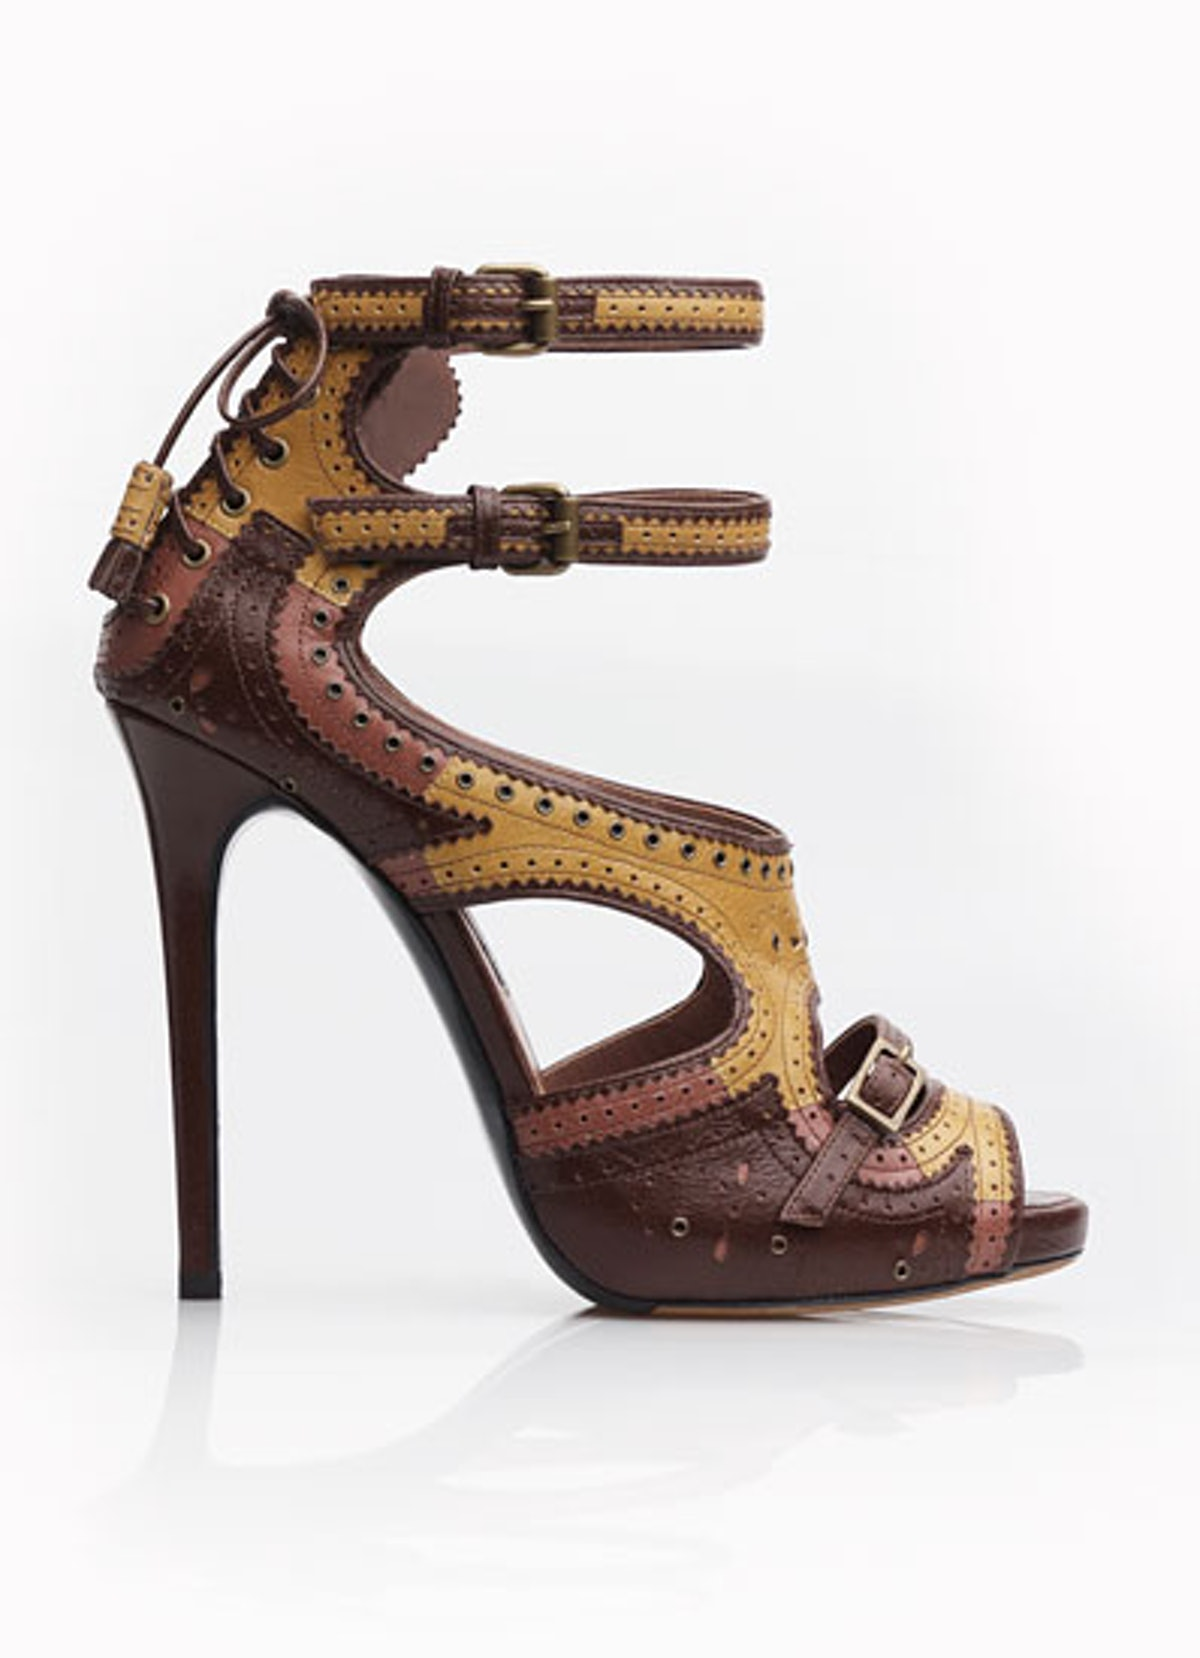 fass-wicked-shoes-06-v.jpg